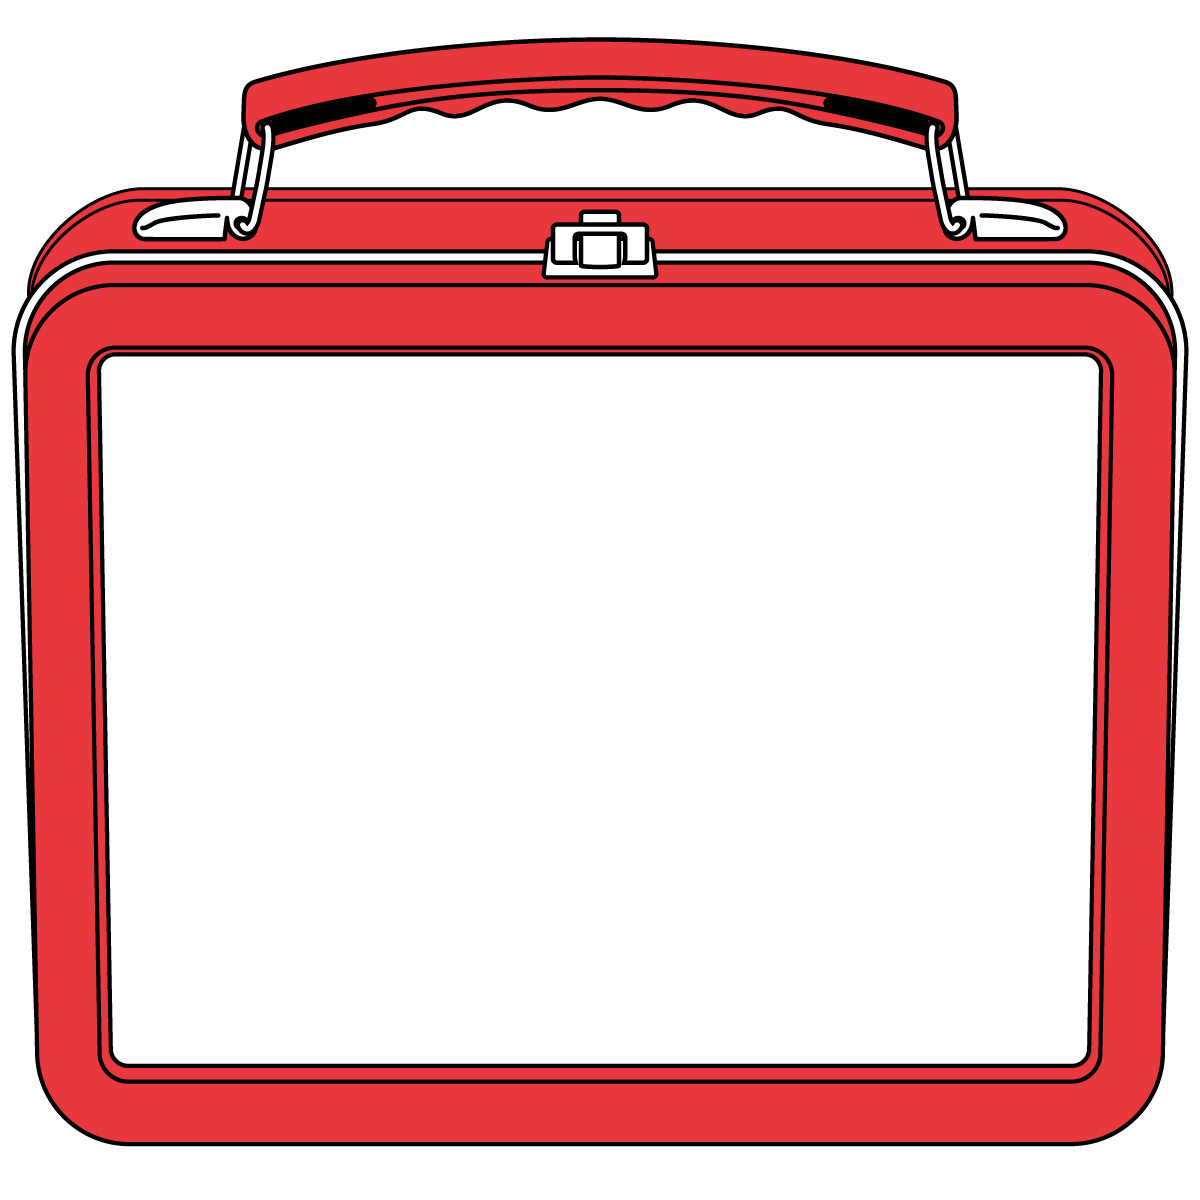 Lunchbox clipart outline. Printable lunch box